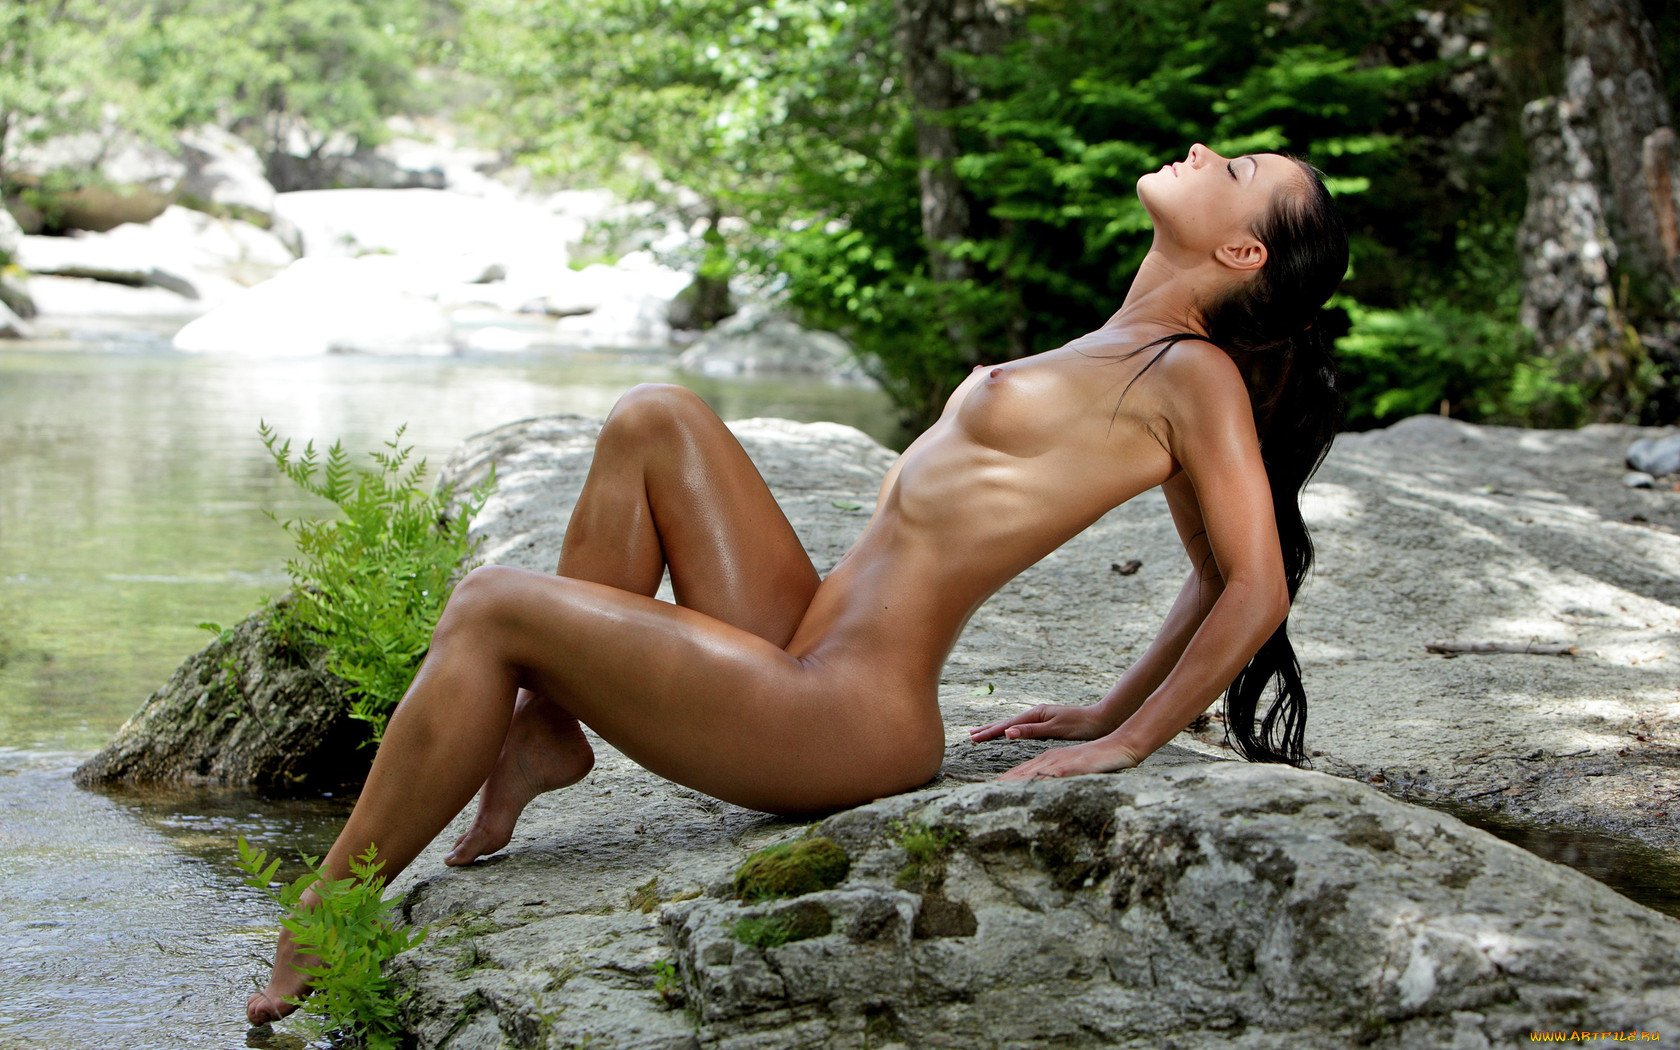 Girls nature nude in Mobile Real